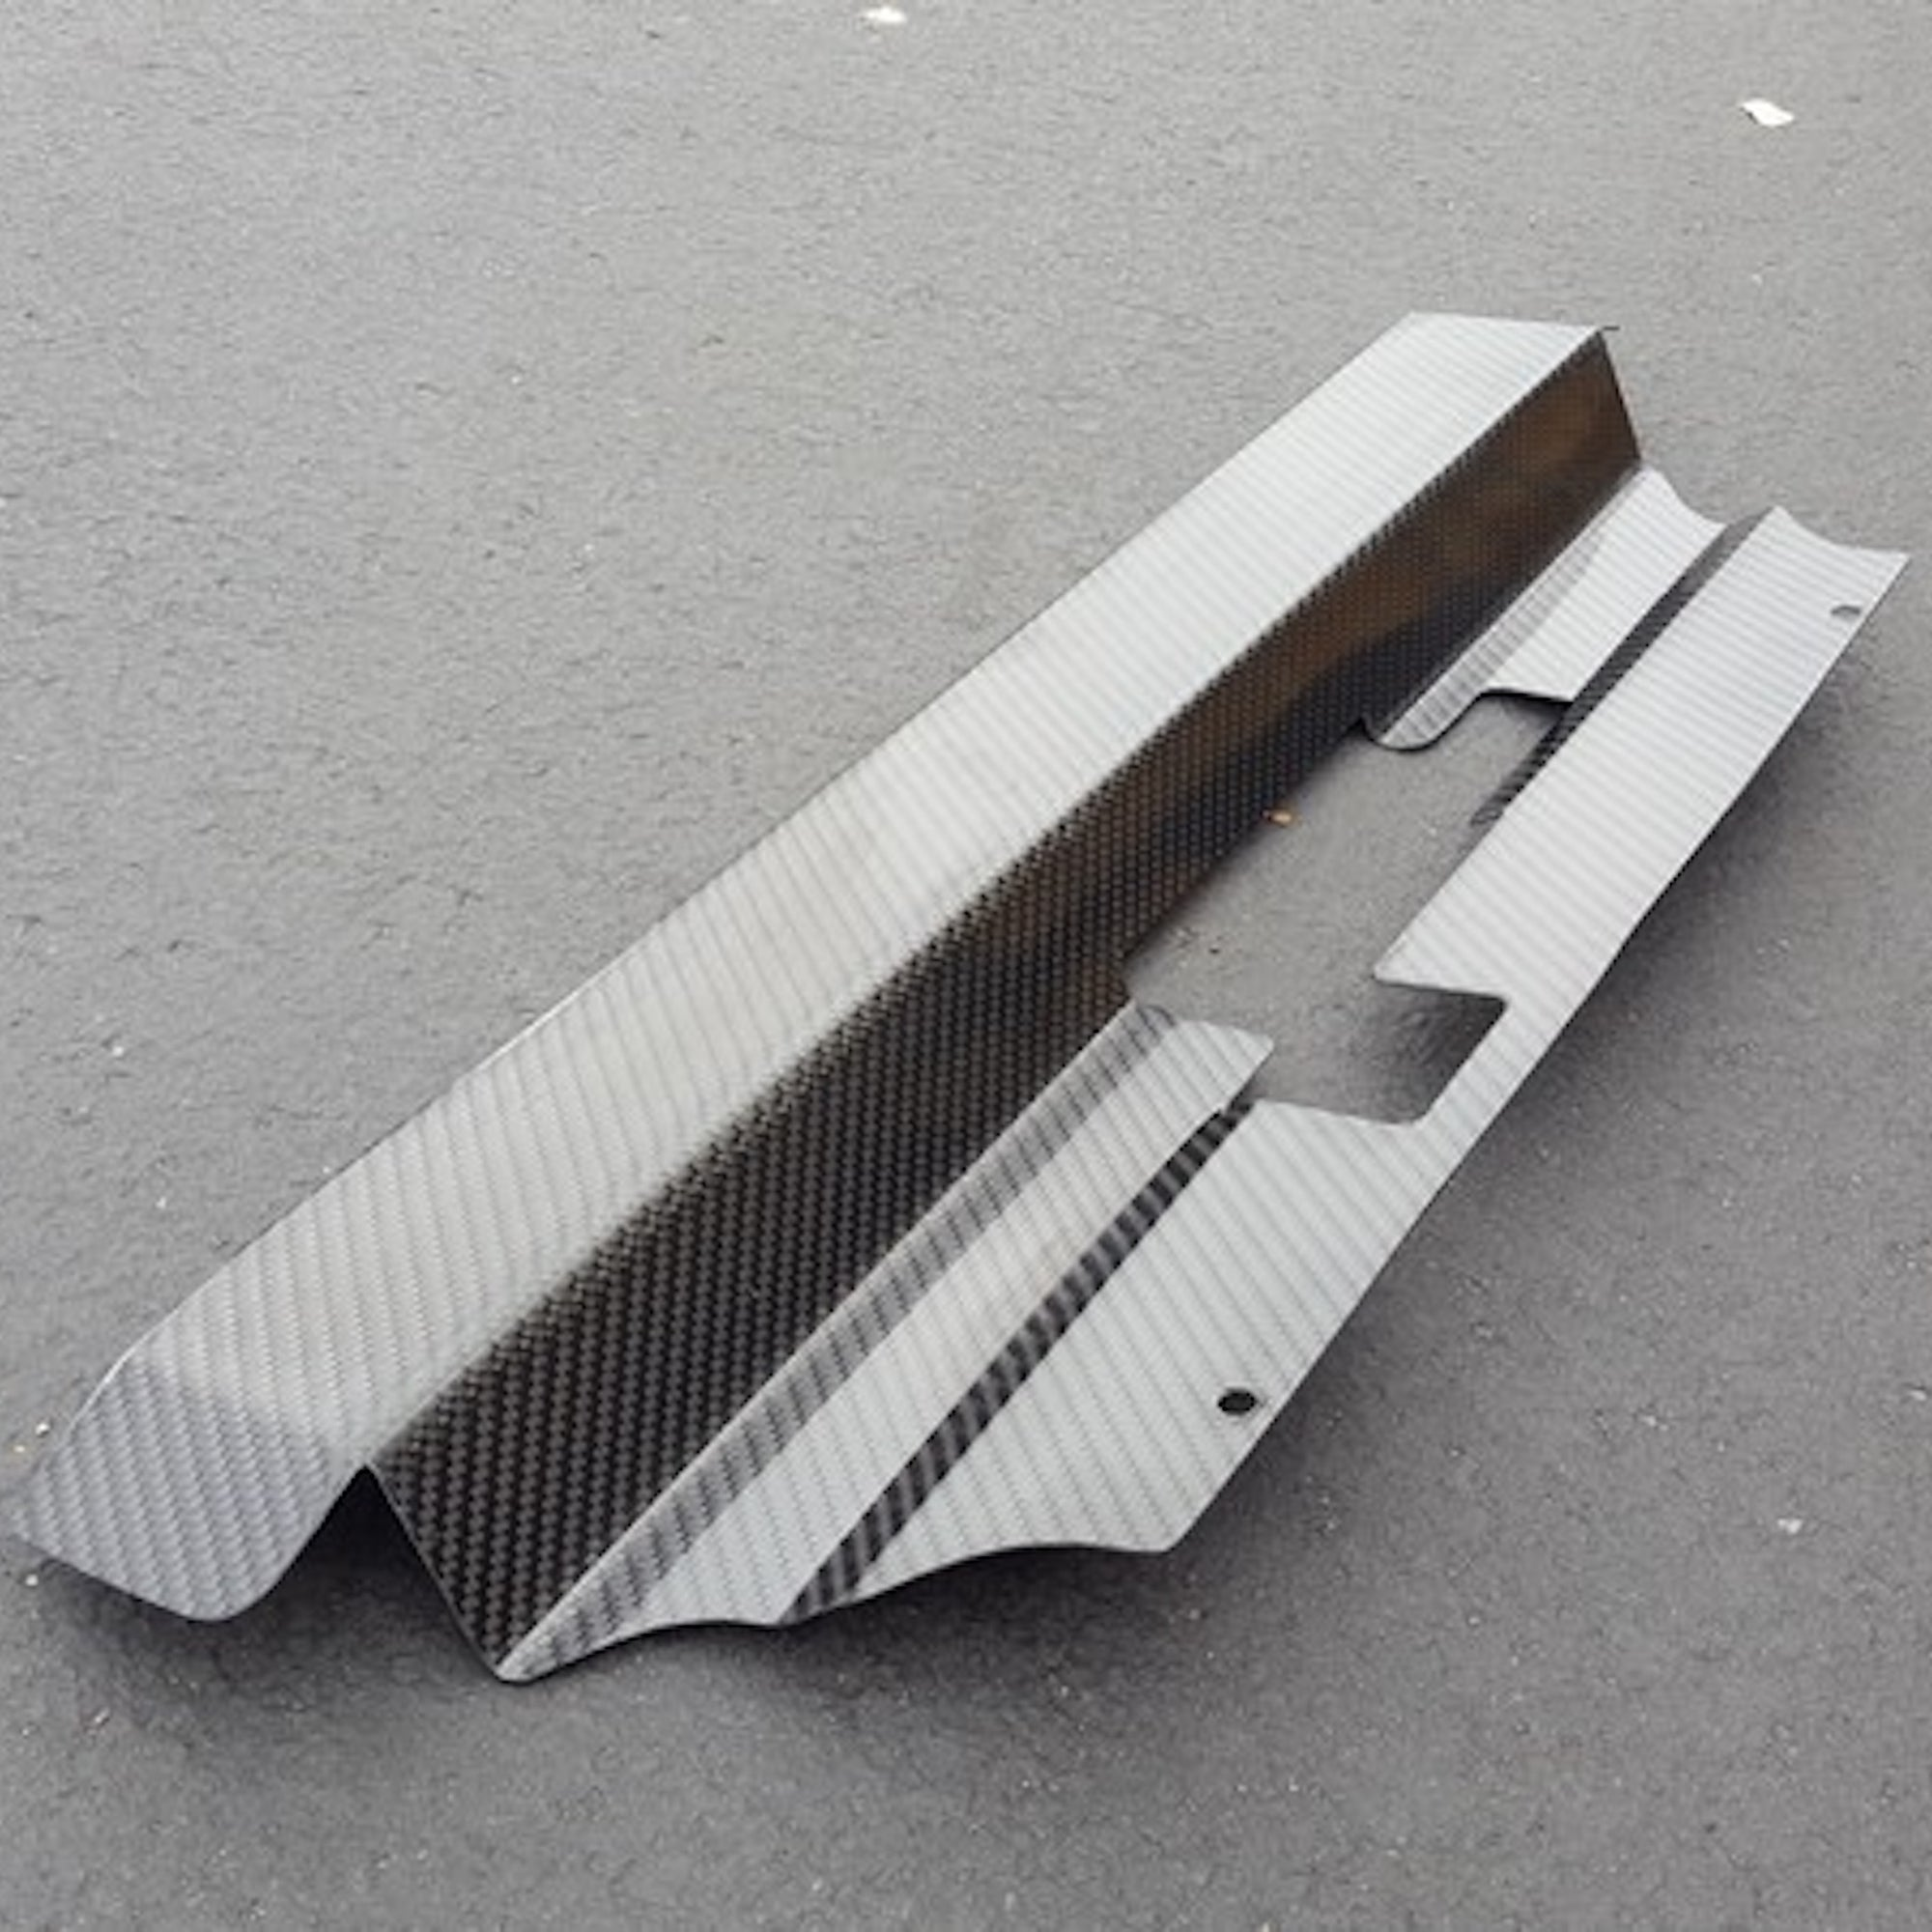 HOW TO MAKE A CARBON FIBER '99-'04 FORD MUSTANG RADIATOR COVER